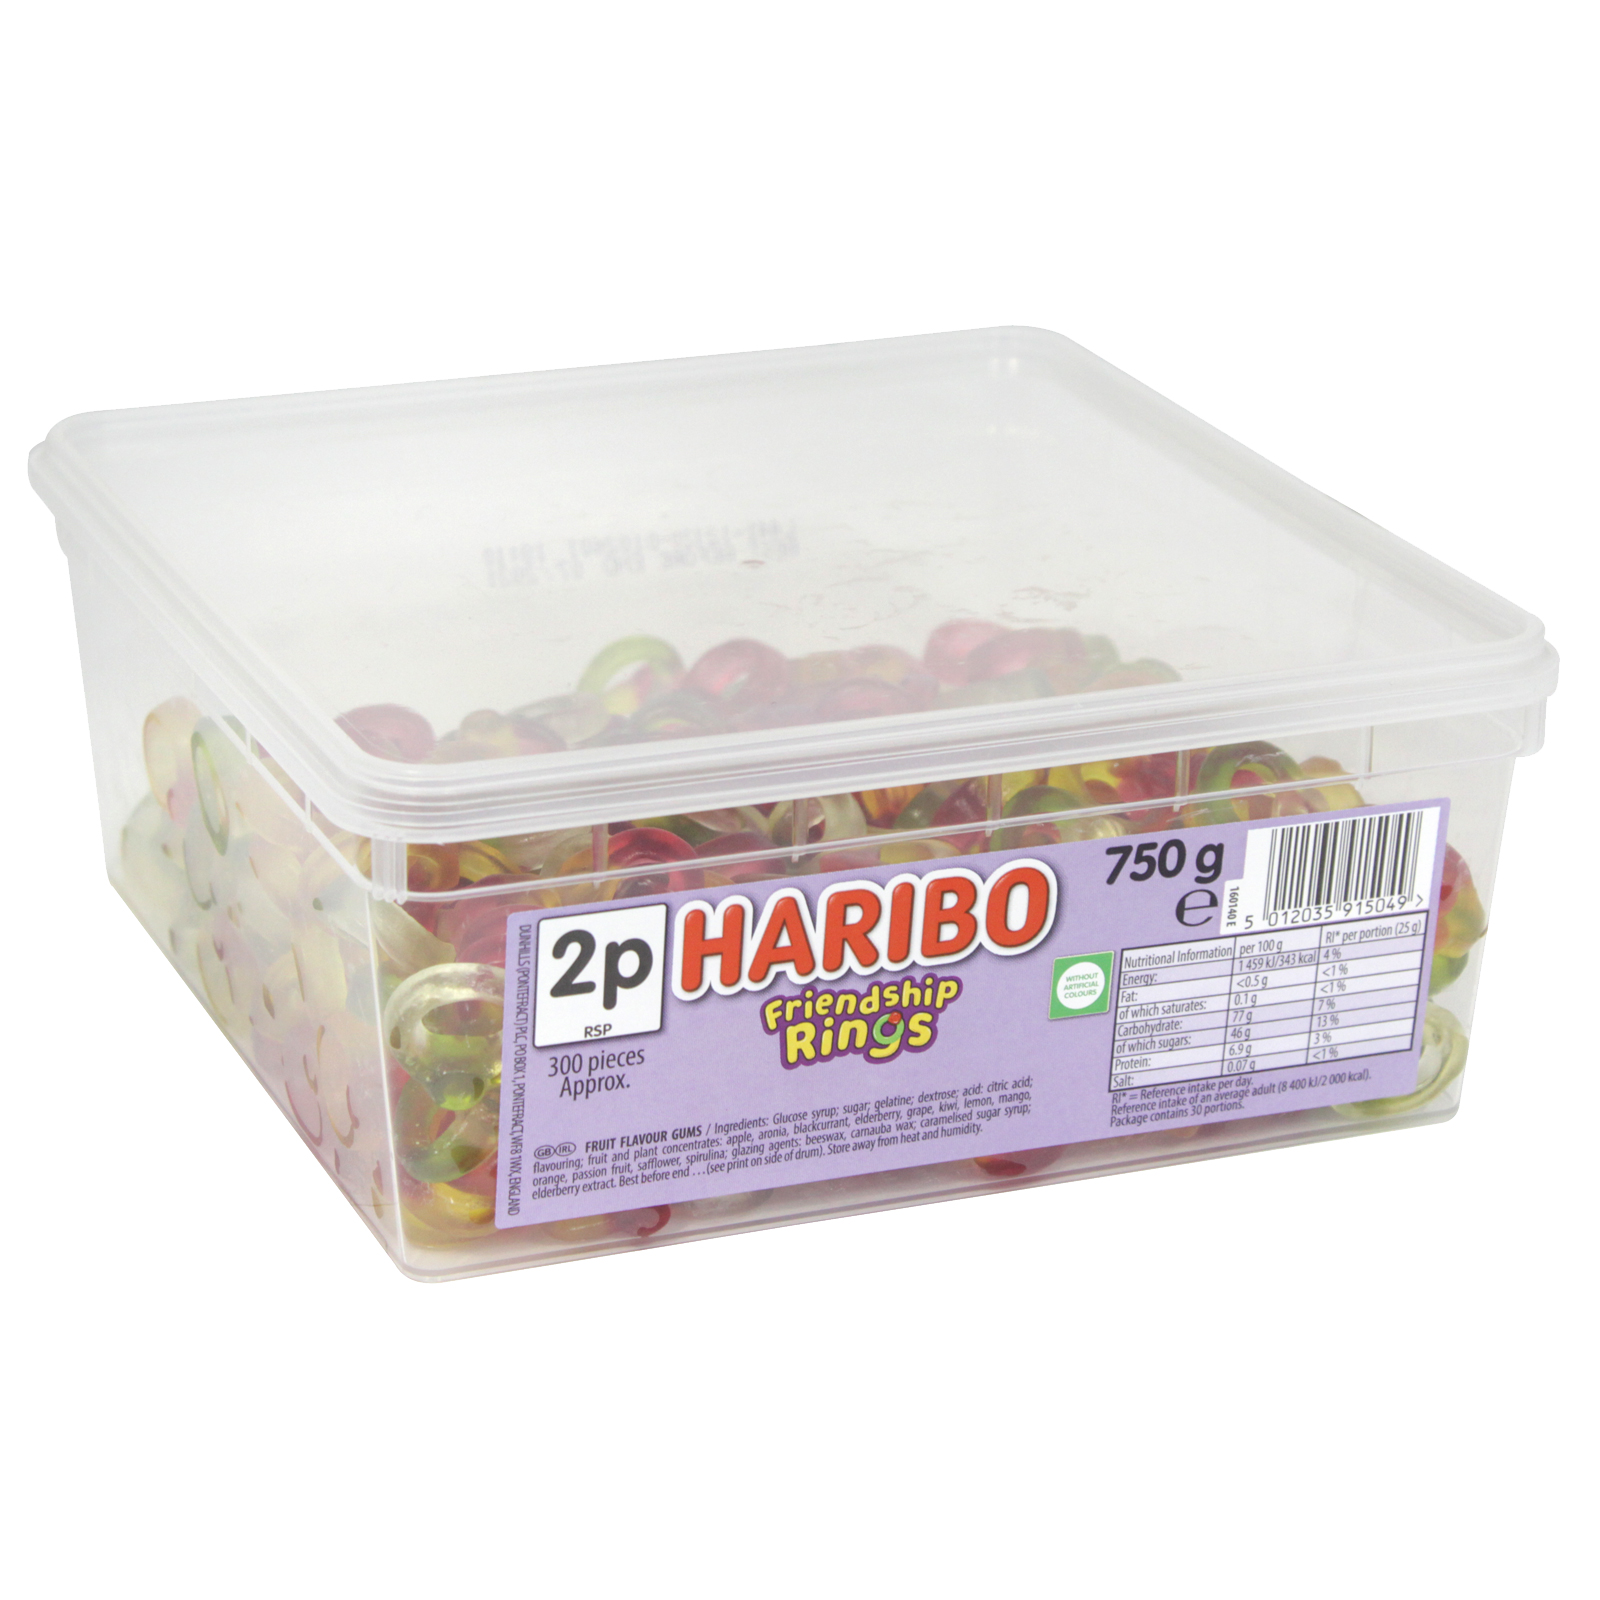 HARIBO FRIENDSHIP RINGS DRUM 750G APPROX 300 PIECES